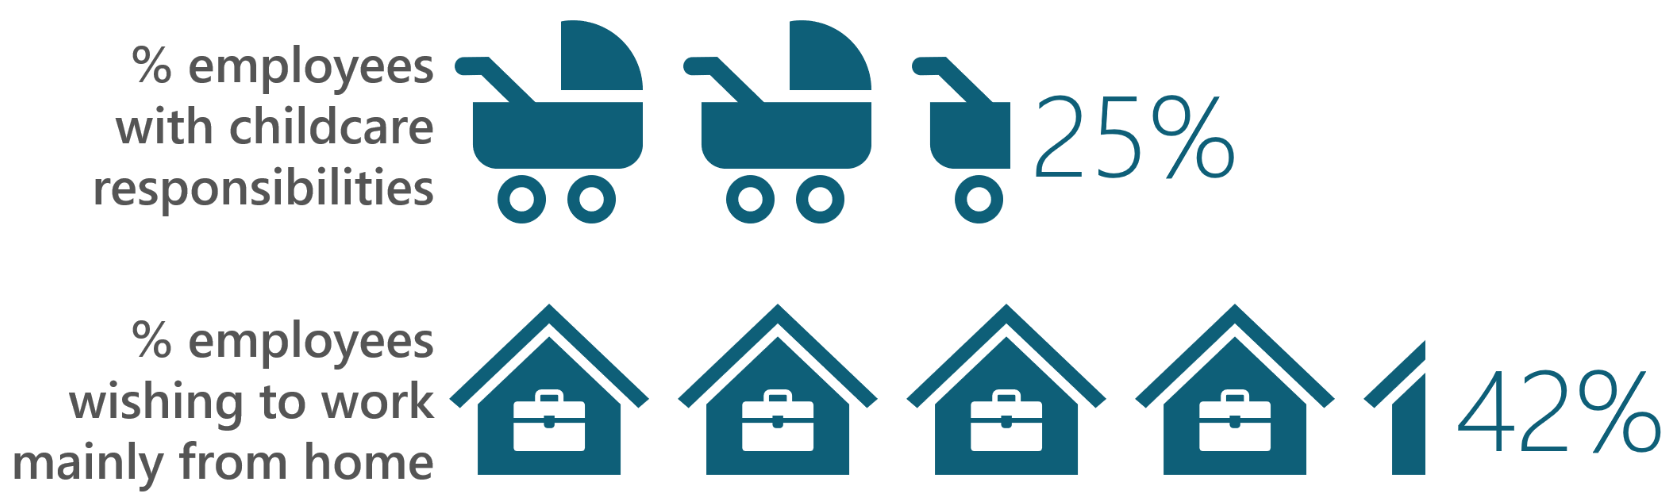 Infographic comparing employees with childcare responsibilities to employees wanting to work from home